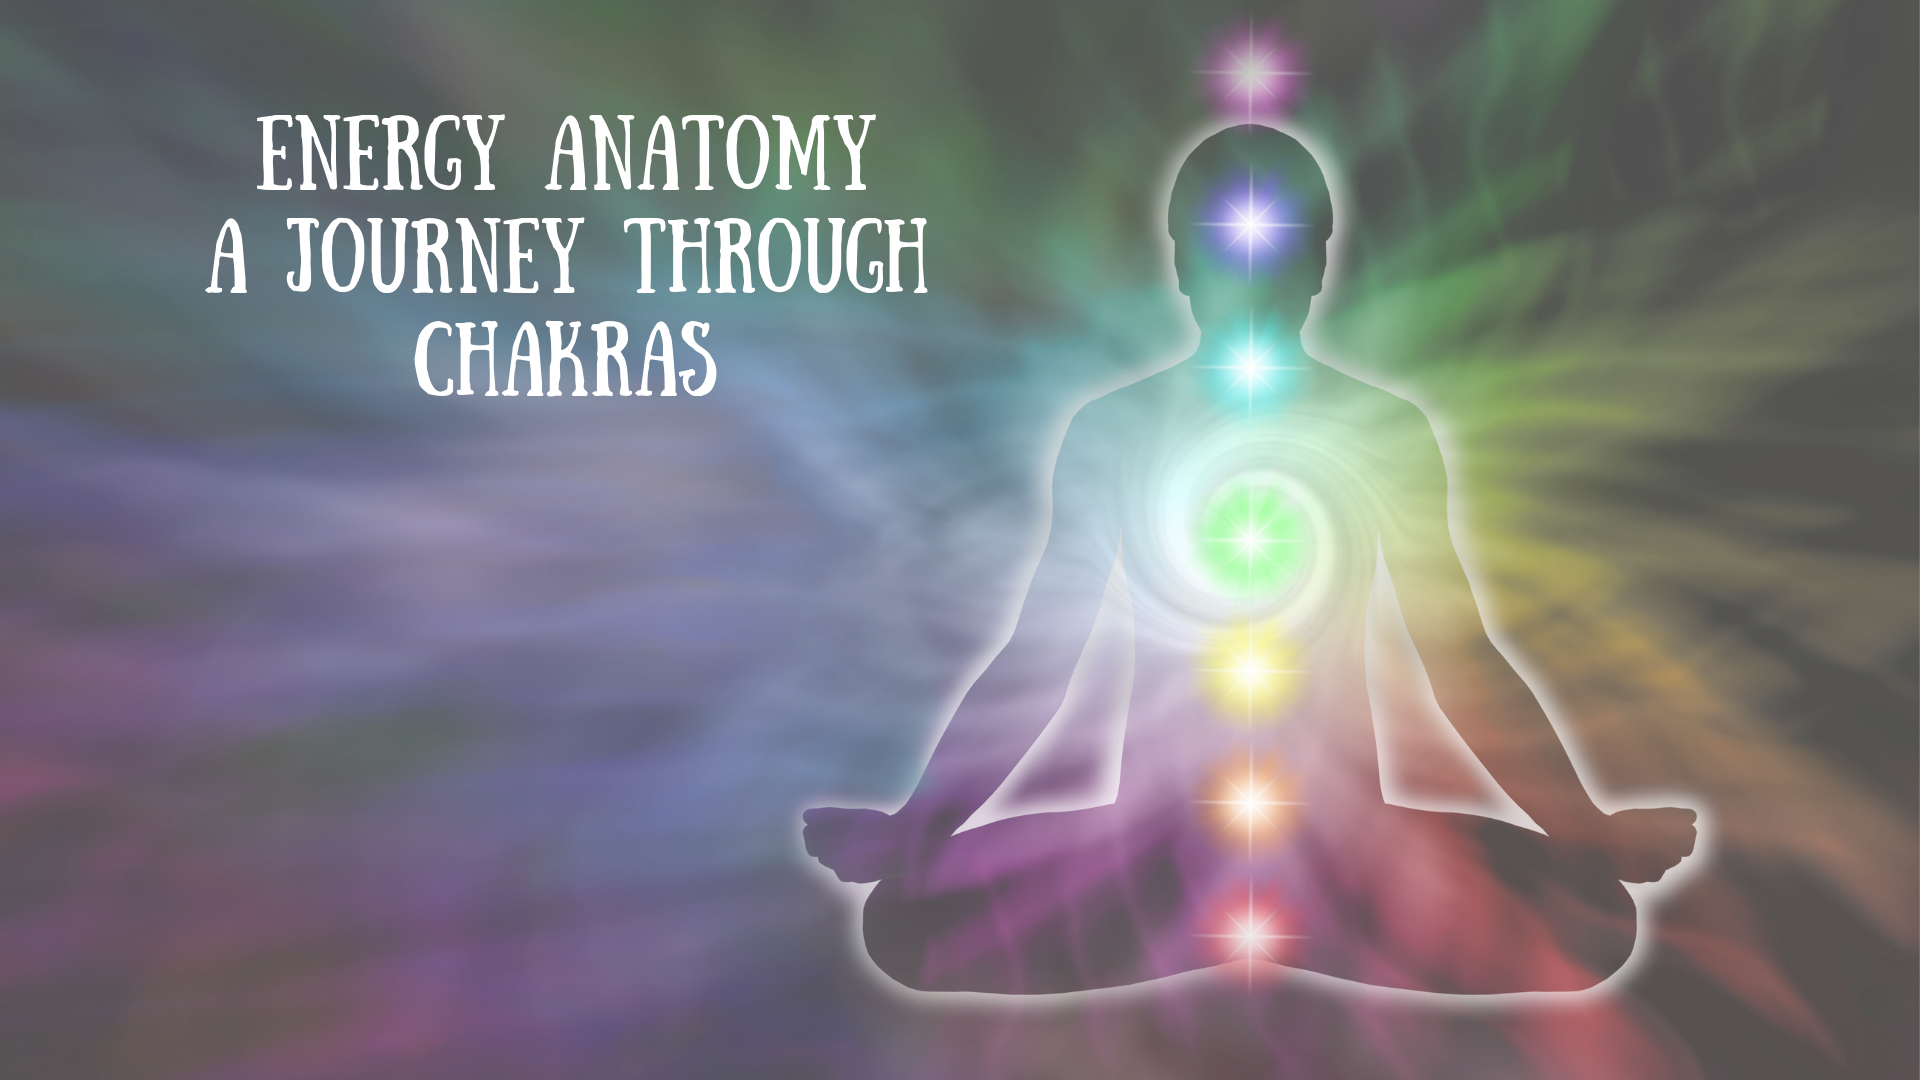 Copy of Energy Anatomy A Journey Through Chakras FB Event Cover 7.25.19 (1).png